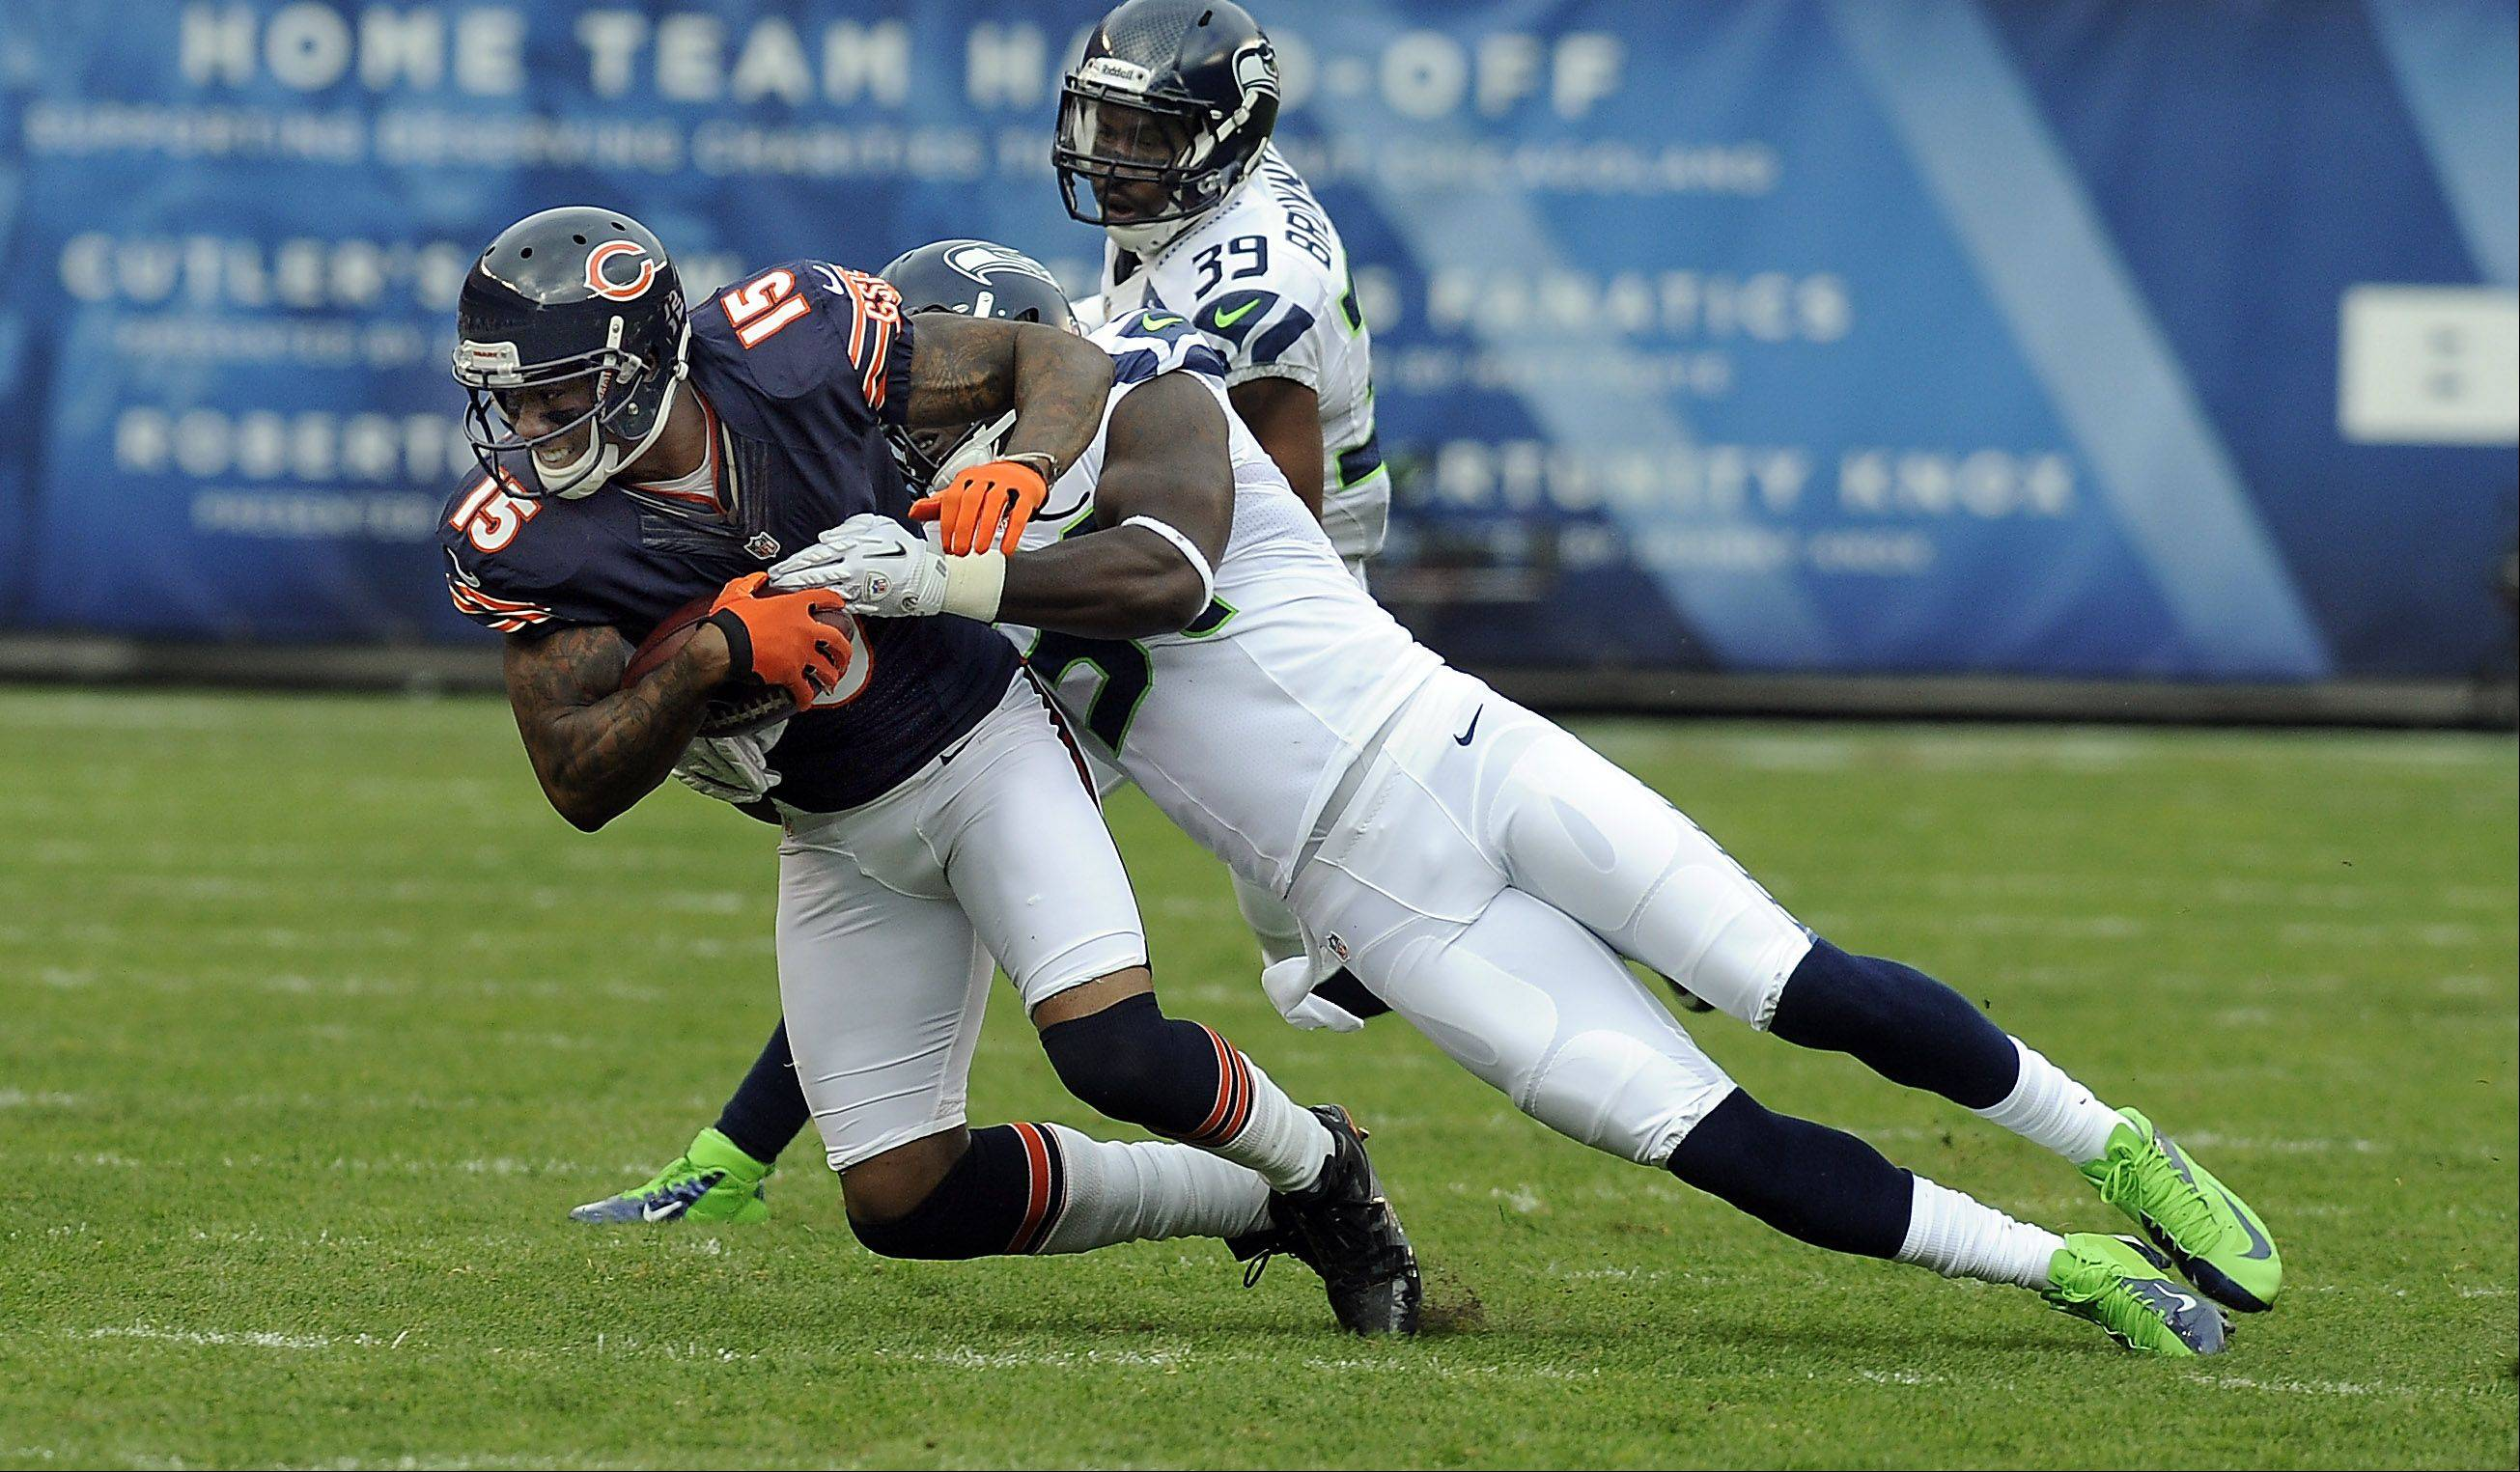 Bears Brandon Marshall on this pass play reception in the first half for yardage as he is tackled by the Seahawks defense at Soldier Field in Chicago.